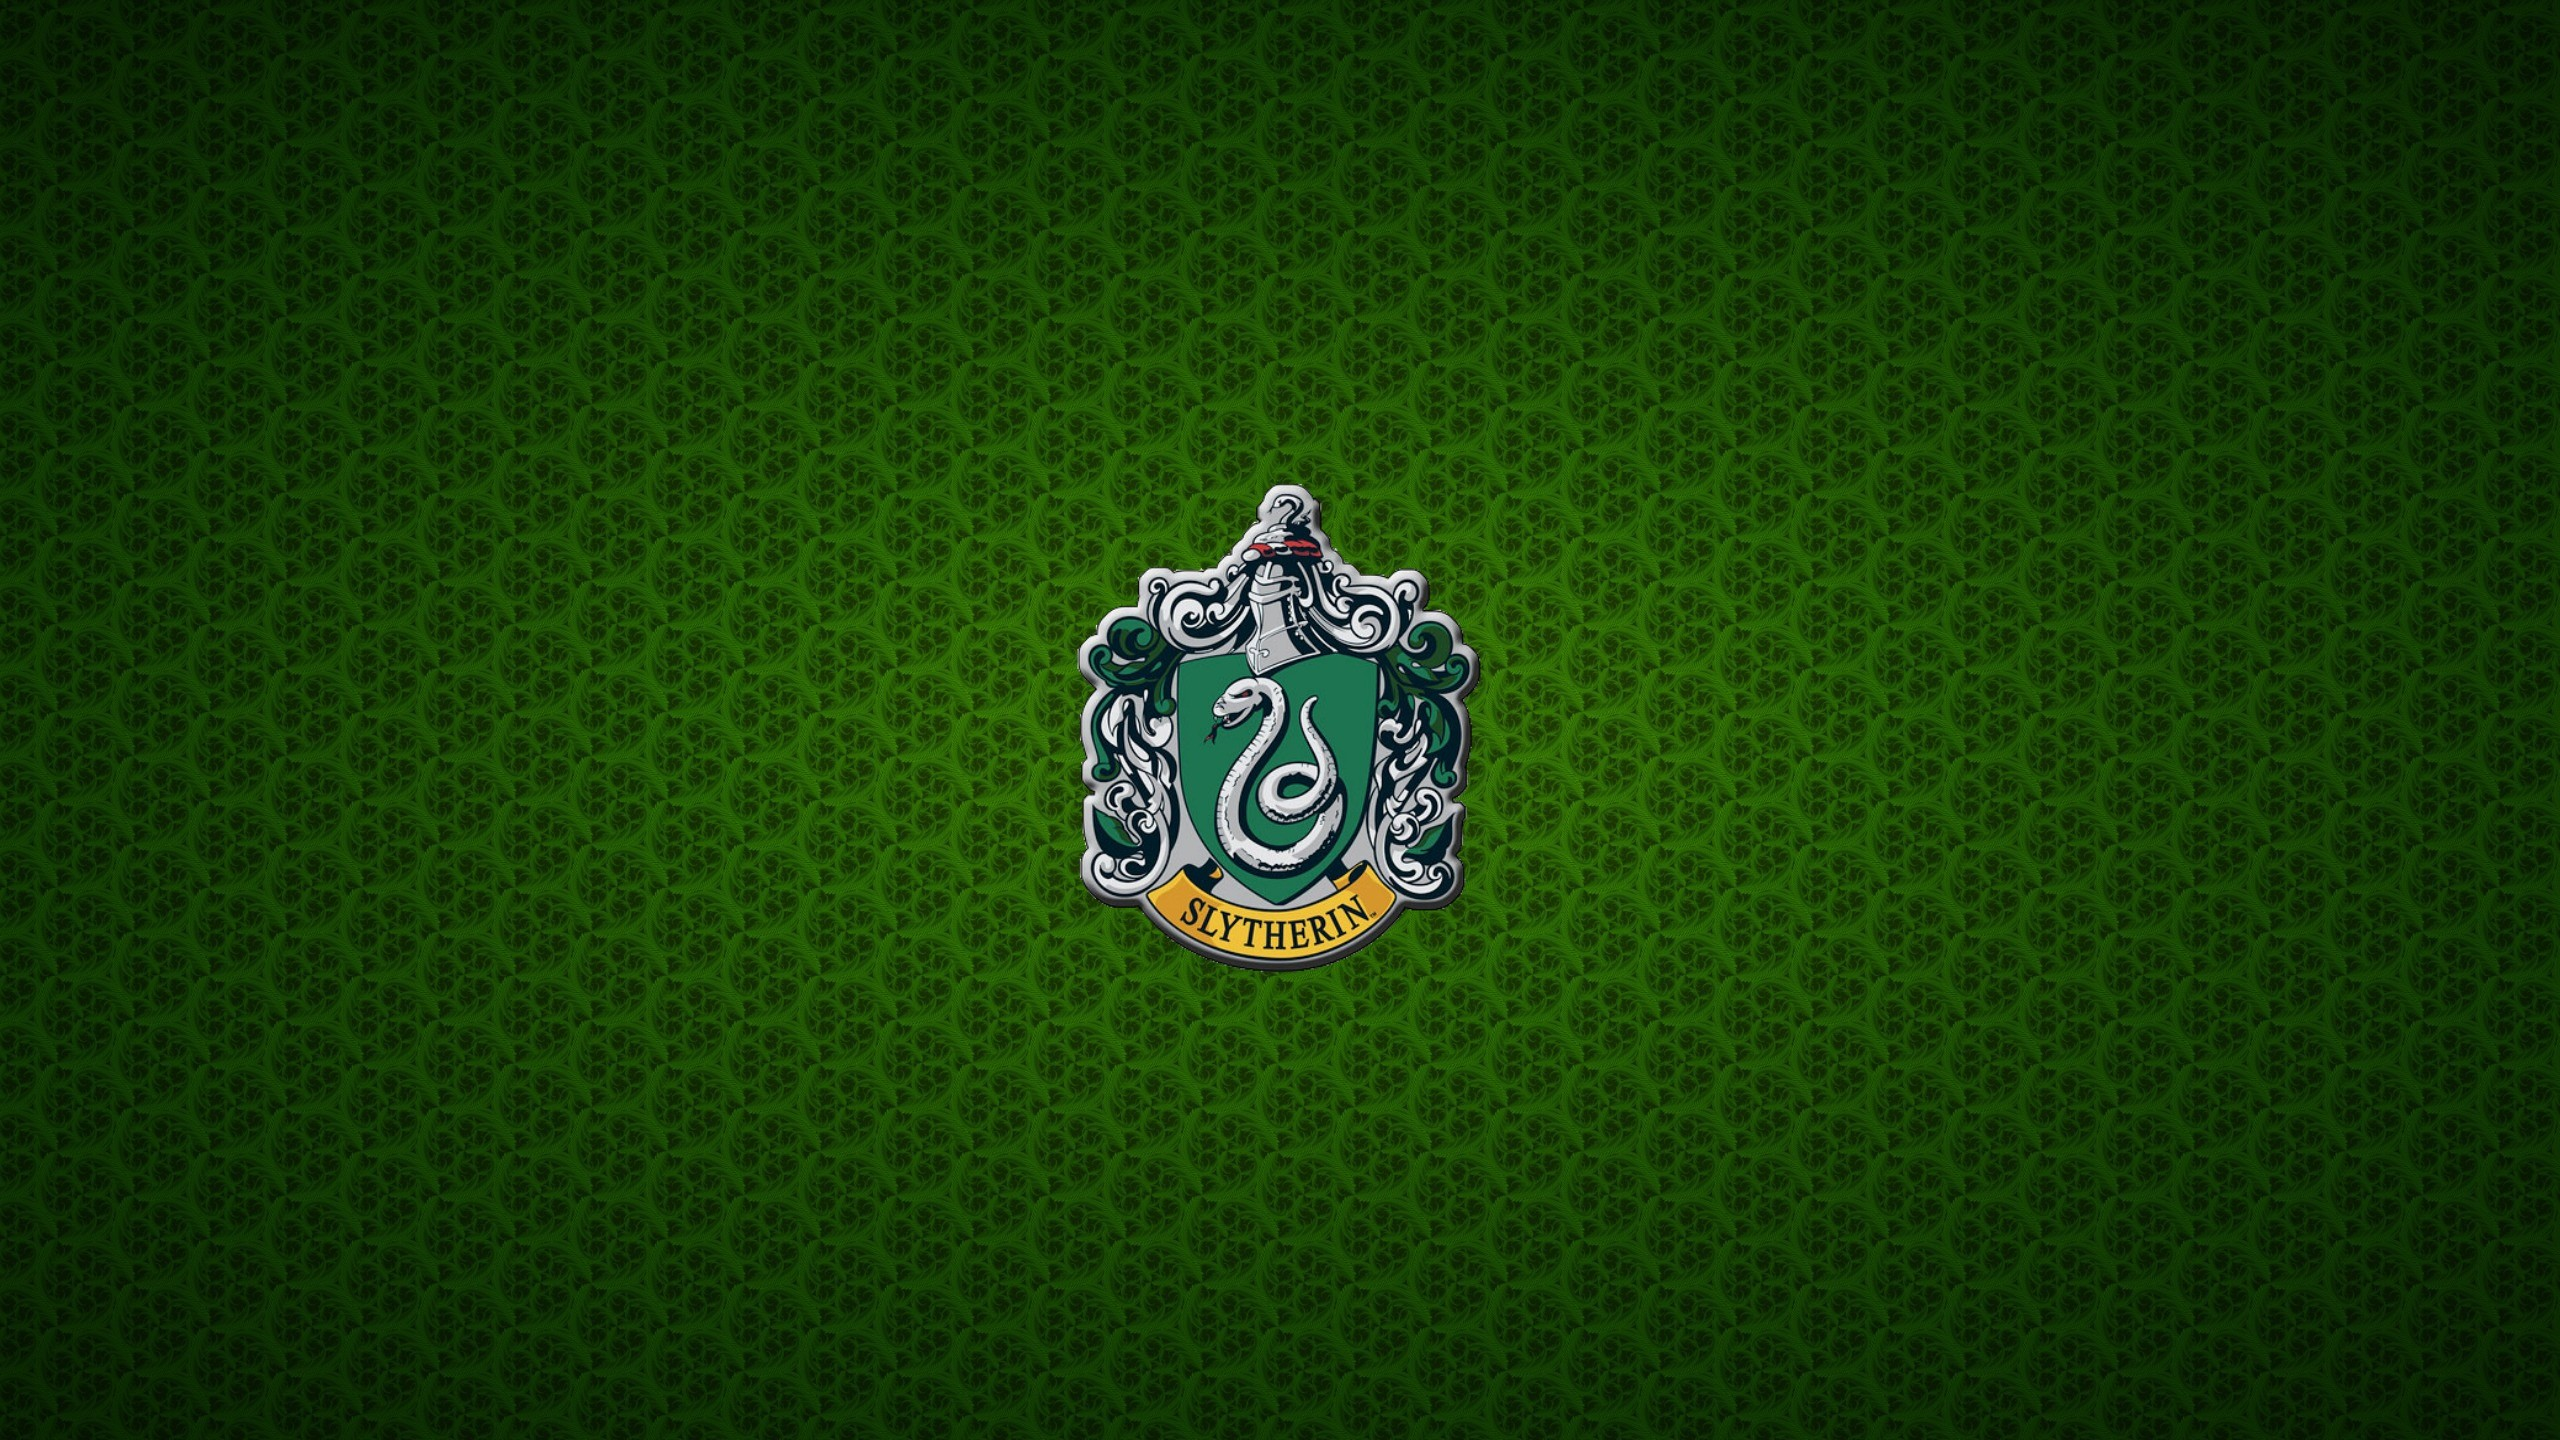 Slytherin Wallpaper 183 ① Download Free Stunning Wallpapers